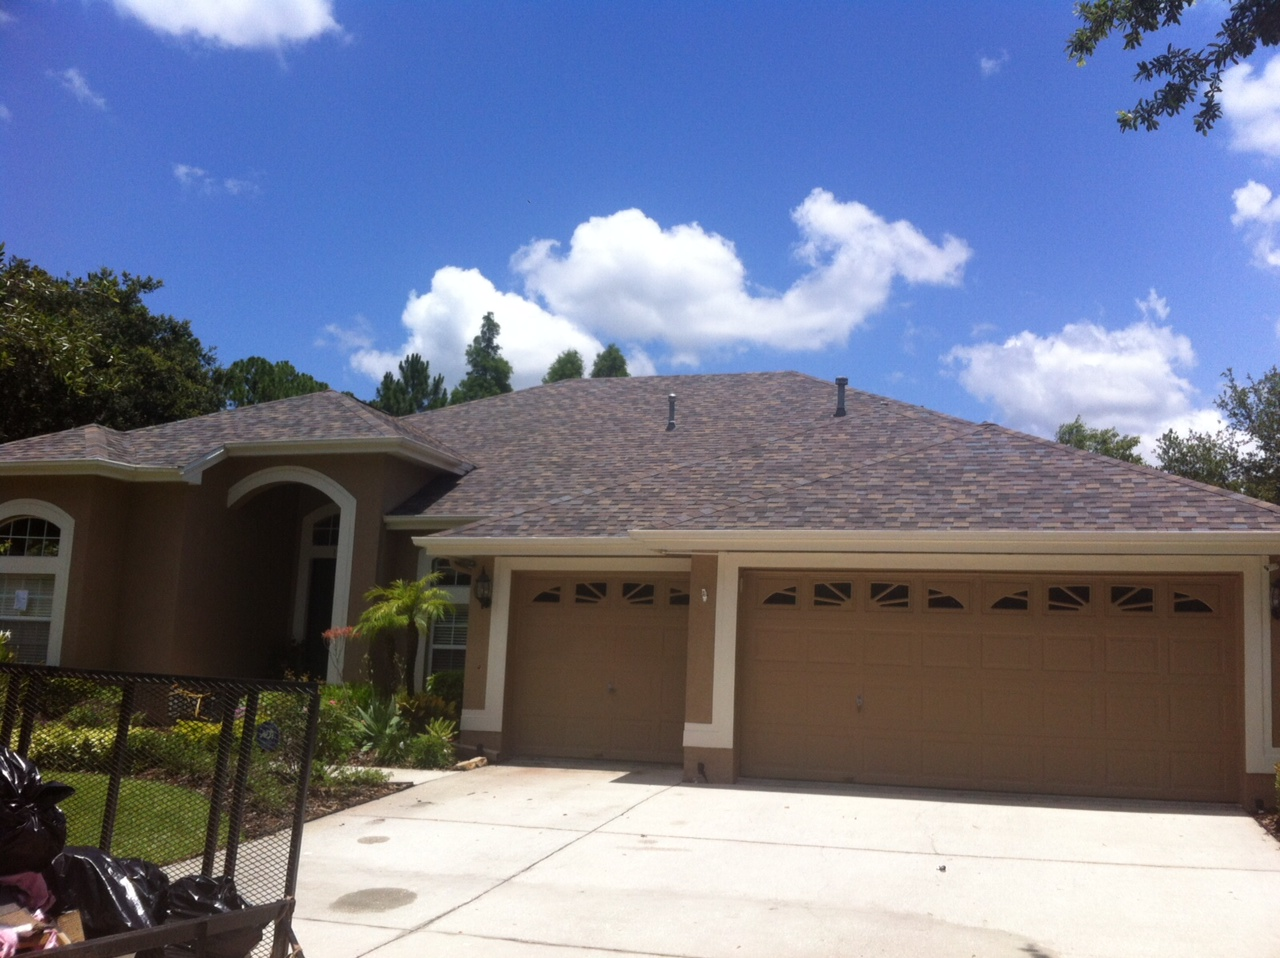 Asphalt roof replacement in Tampa